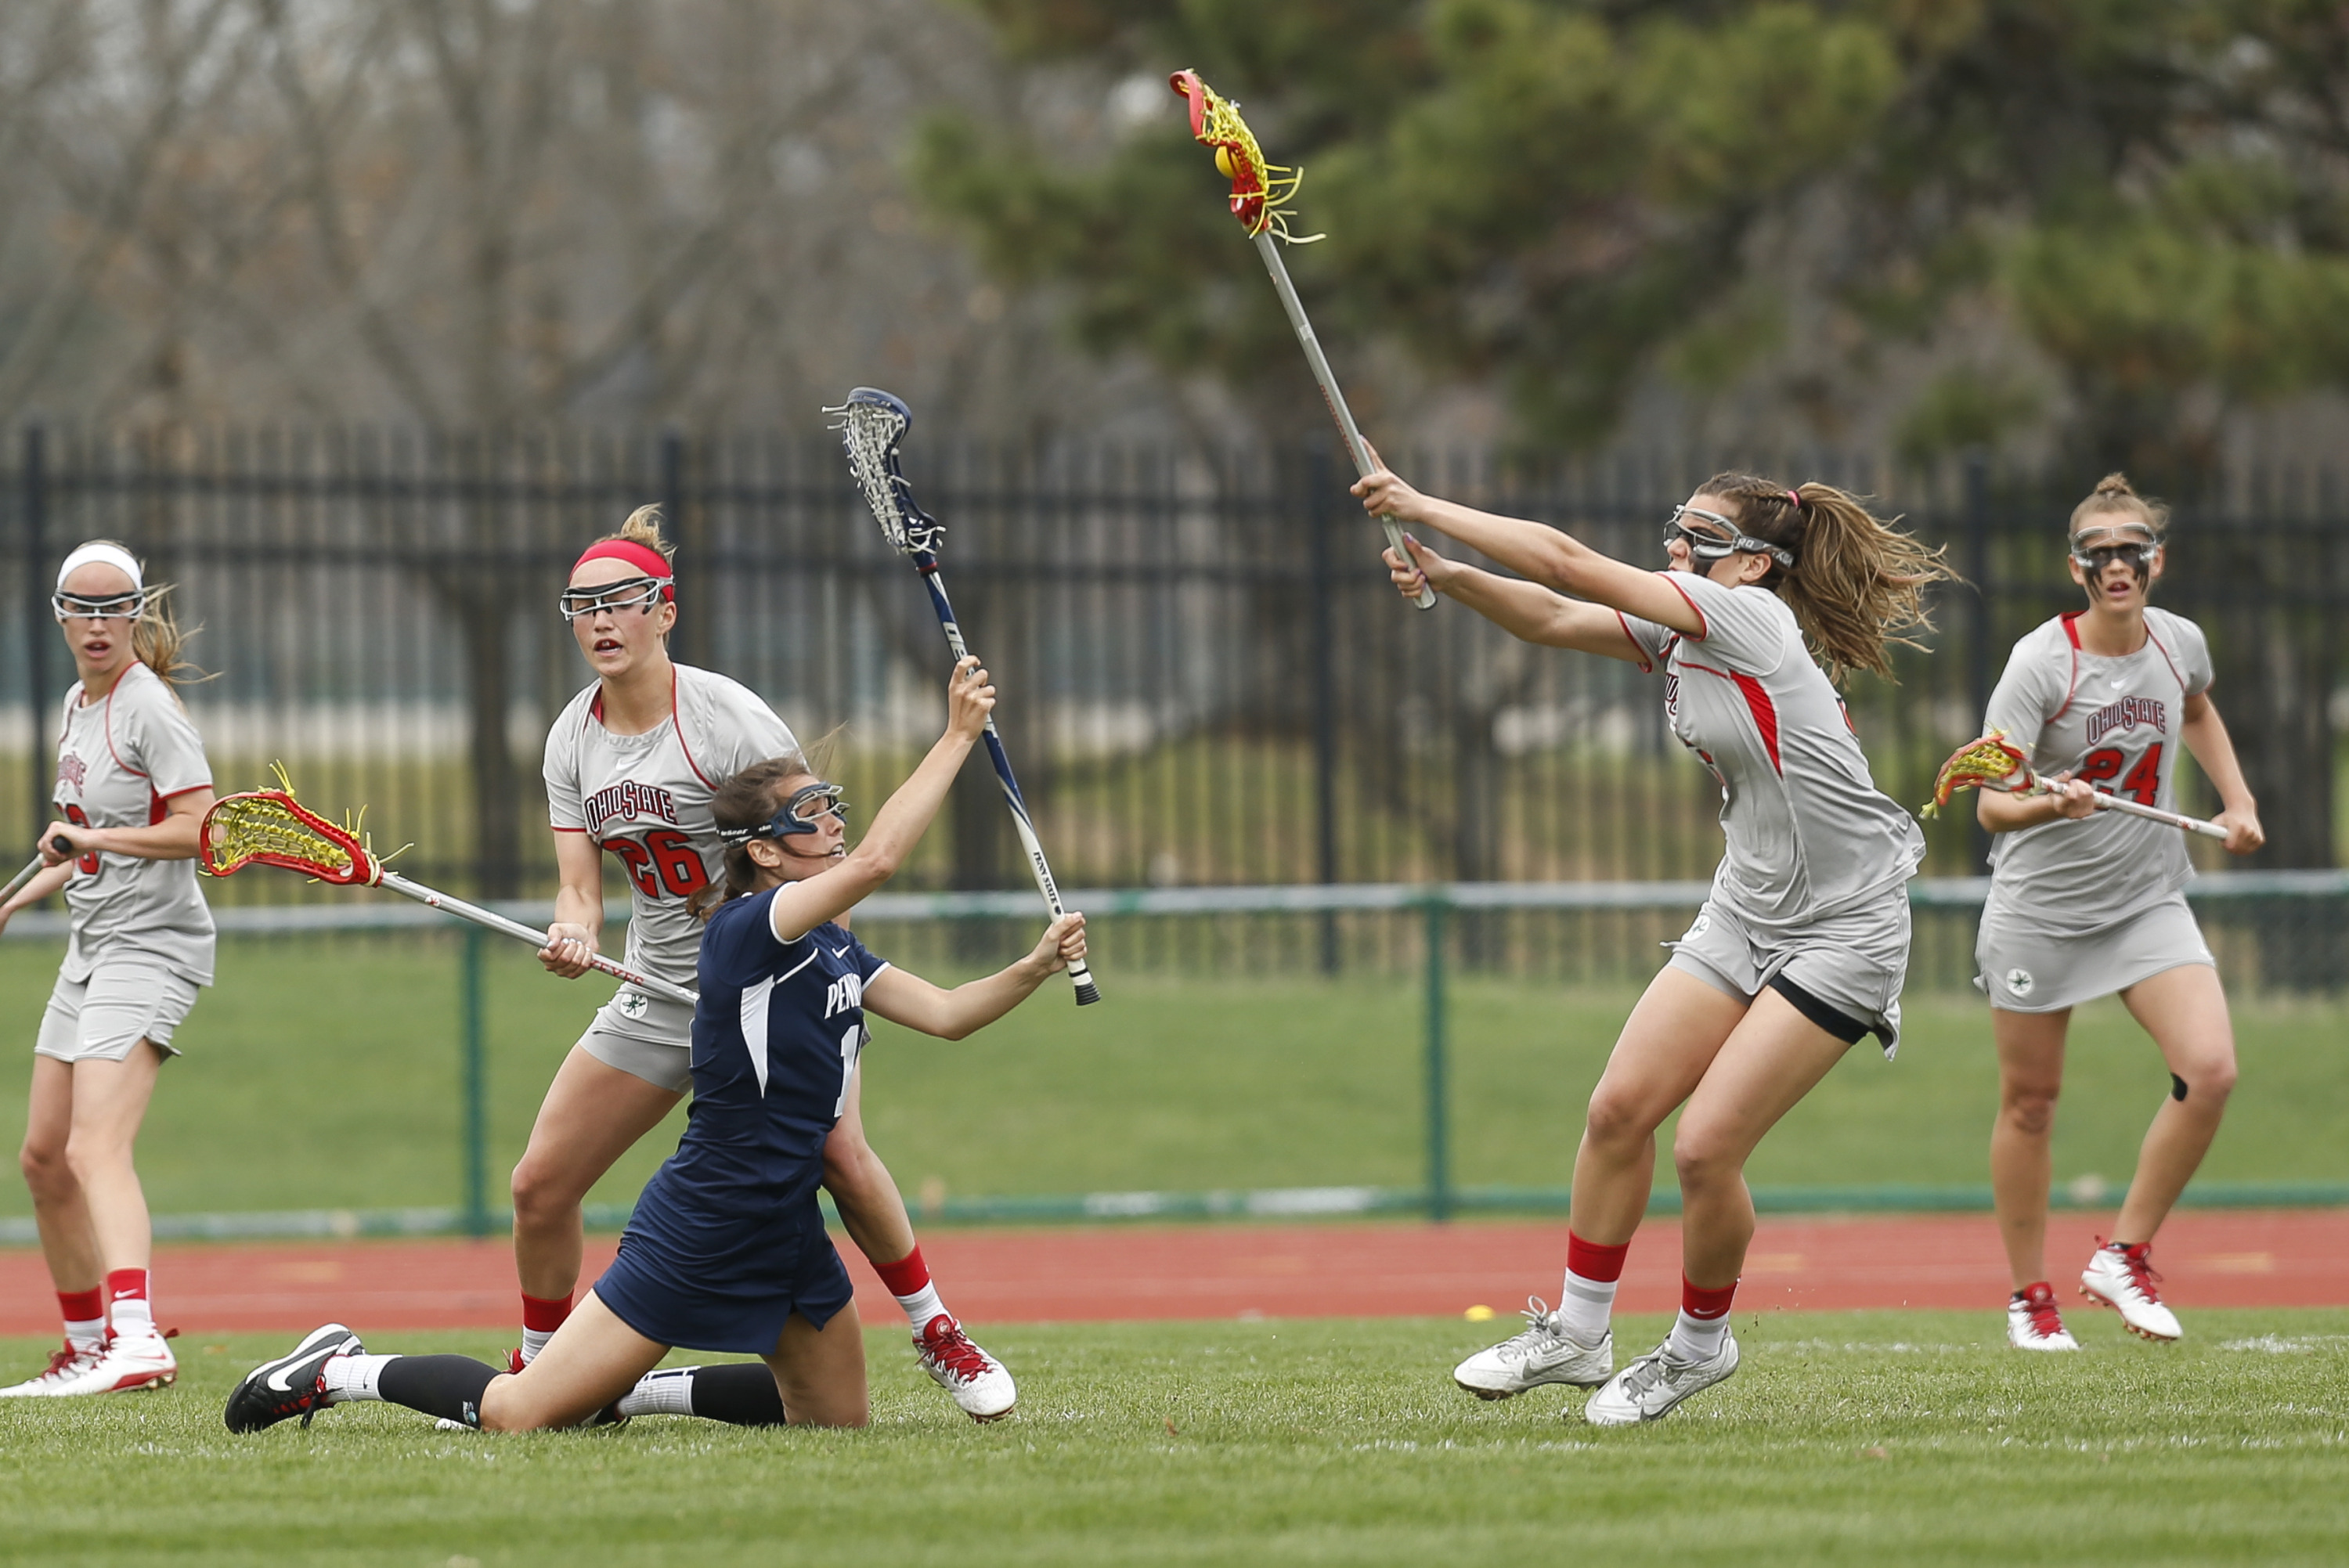 Ohio State plays Penn State in women's lacrosse at Jesse Owens Memorial Stadium in Columbus, Ohio on Sunday, April 13, 2014.